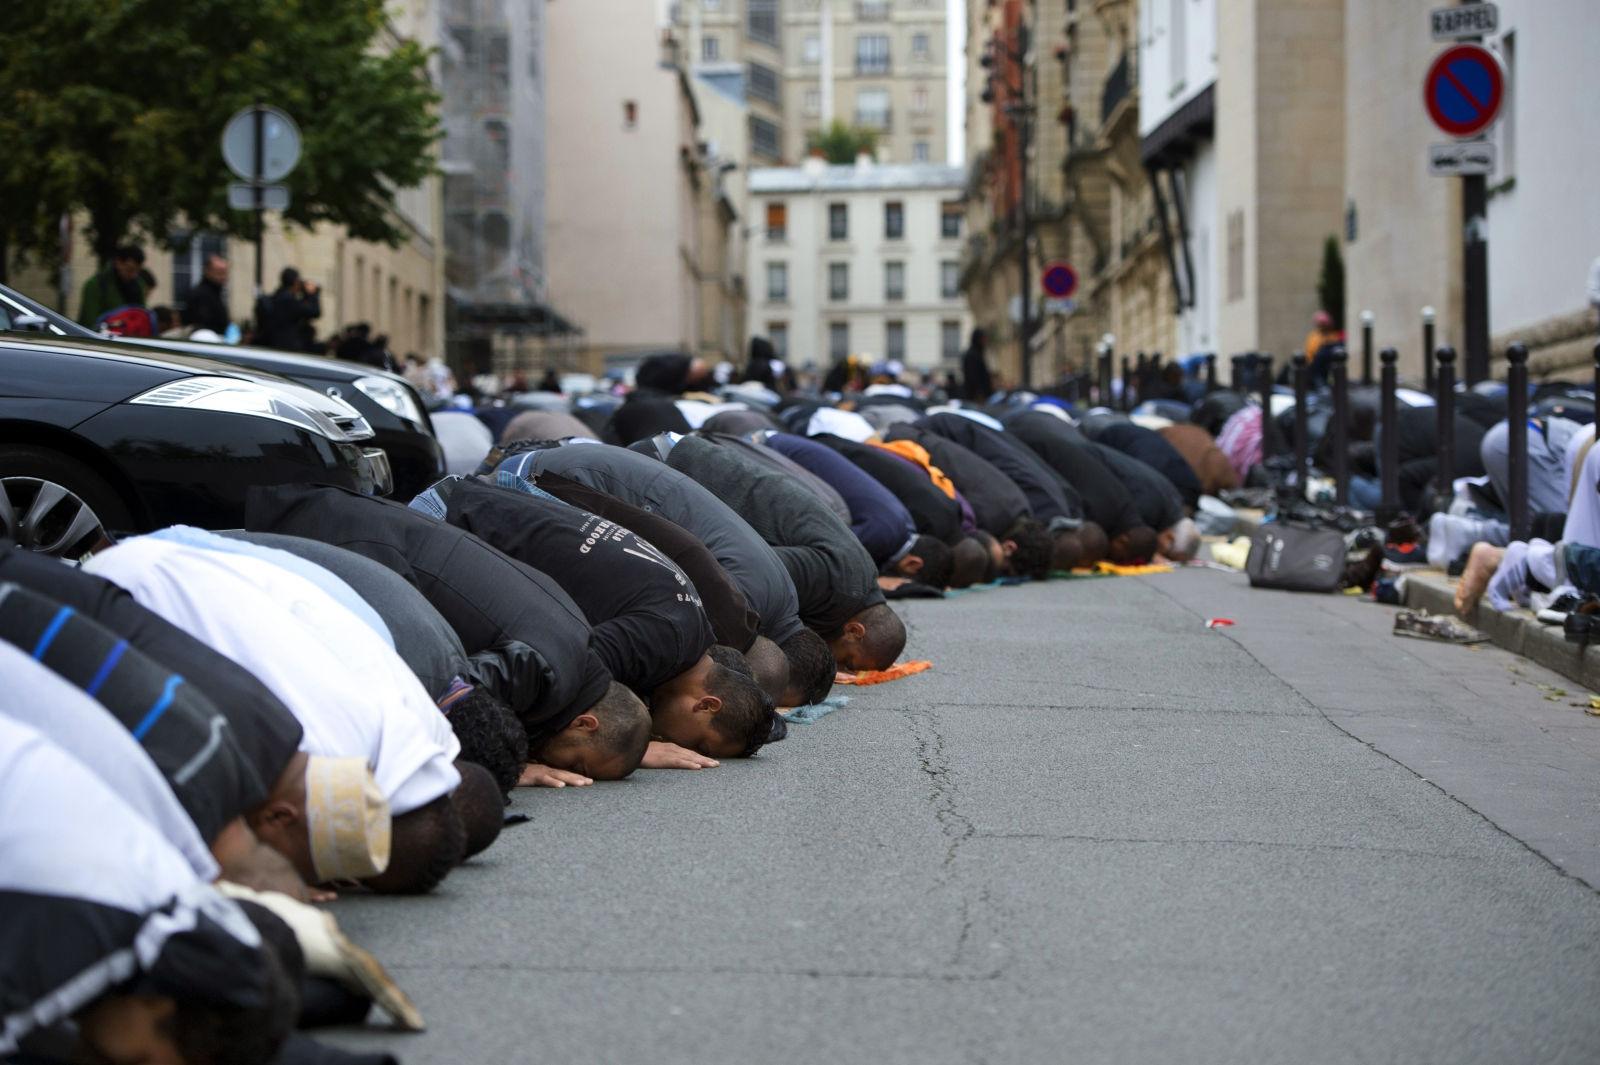 Worshippers outside the Grande Mosque in Paris